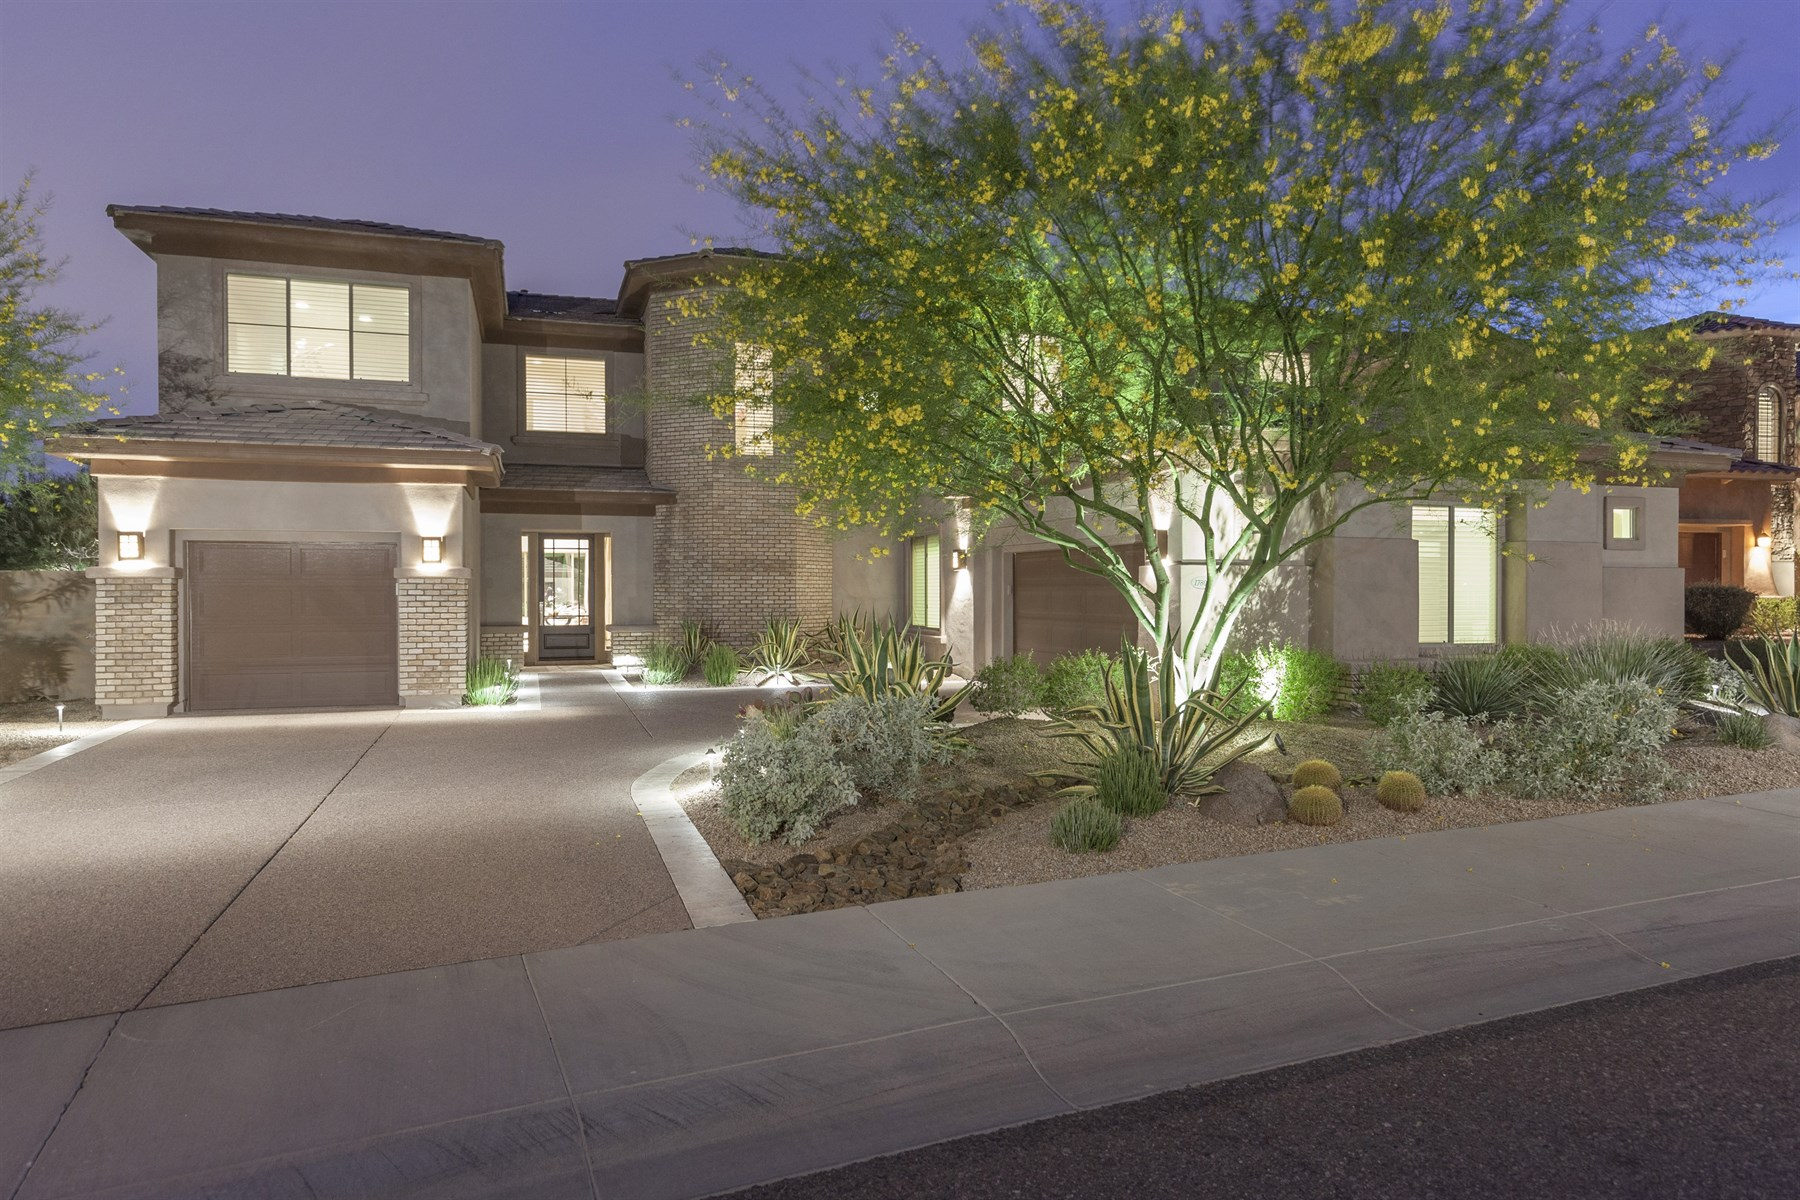 Single Family Home for Sale at Luxury, designer, and highly upgraded home in Windgate Ranch 17806 N 97TH PL Scottsdale, Arizona 85255 United States